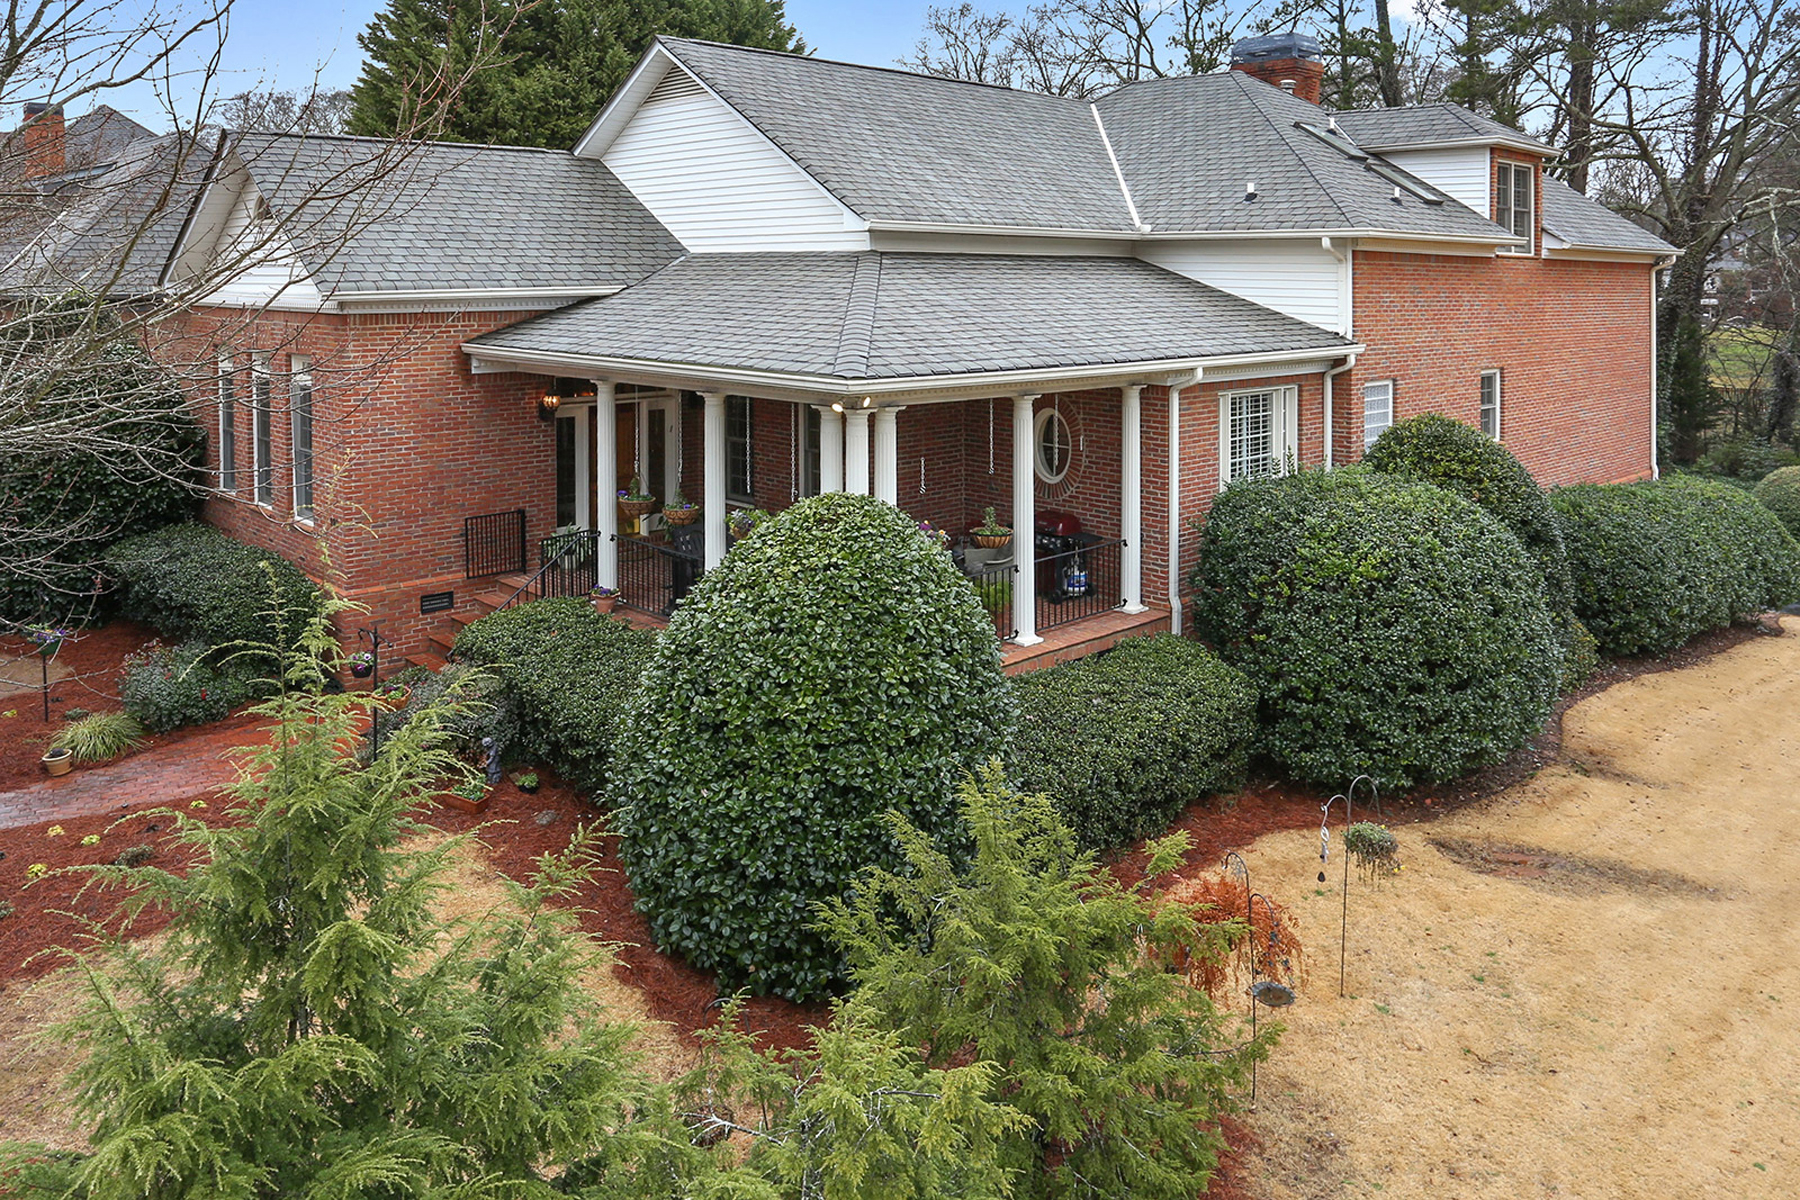 Villa per Vendita alle ore Blair Valley, A Downtown Marietta Gated Community 191 Blair Valley Drive NE Marietta, Georgia, 30060 Stati Uniti